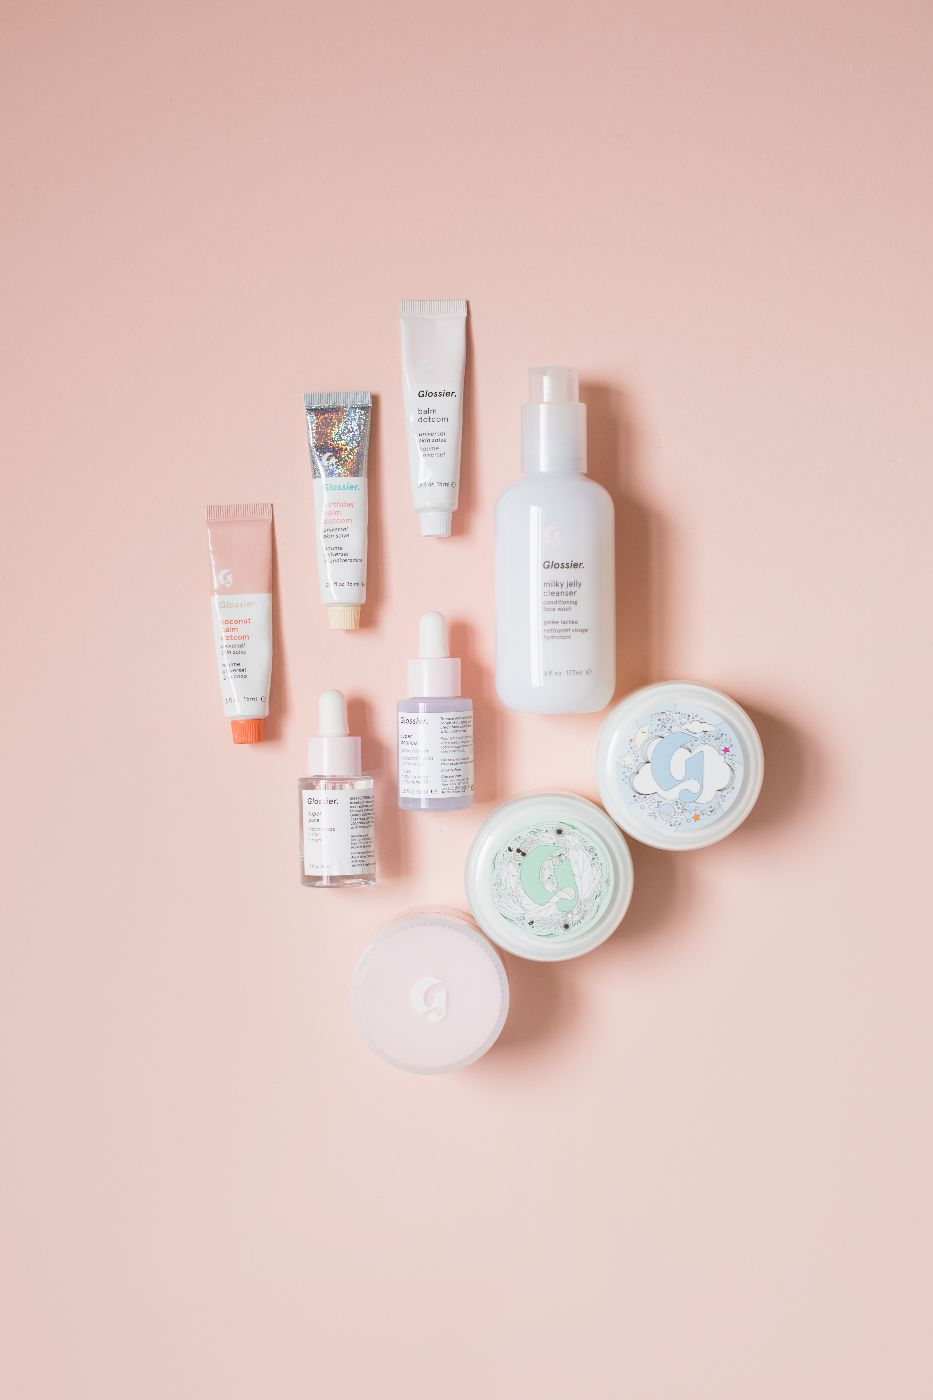 Glossier Launches In The Uk Finally My Top Picks The